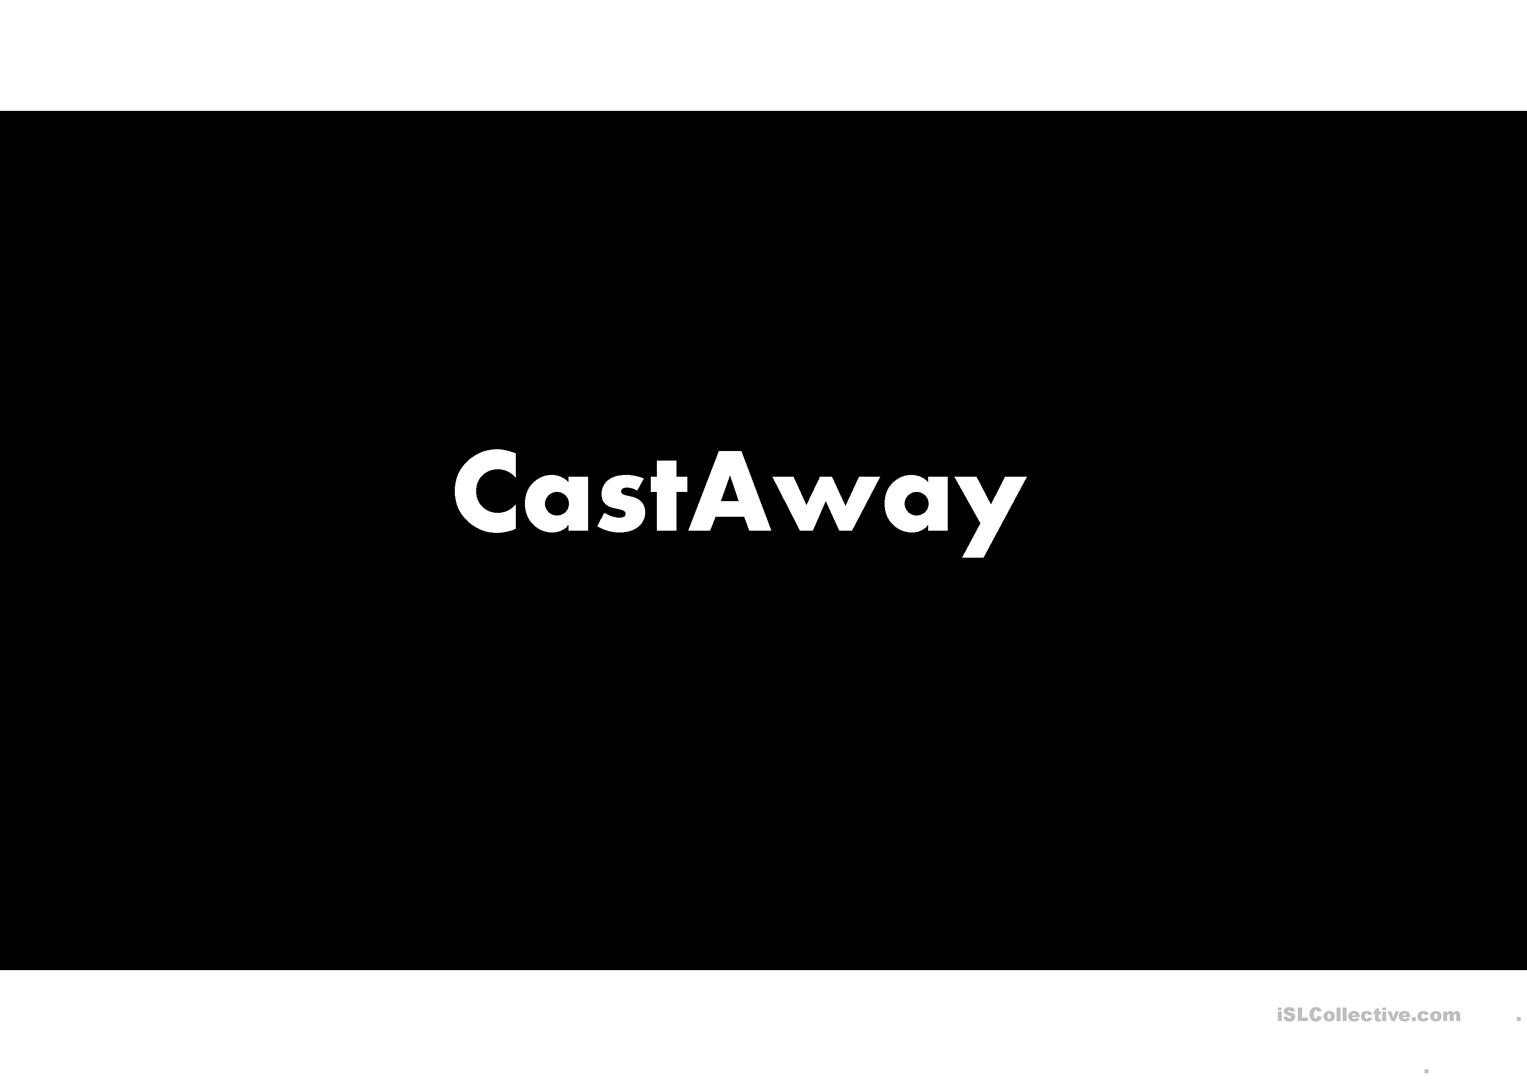 Second Conditional Castaway Movie Trailer Answers And